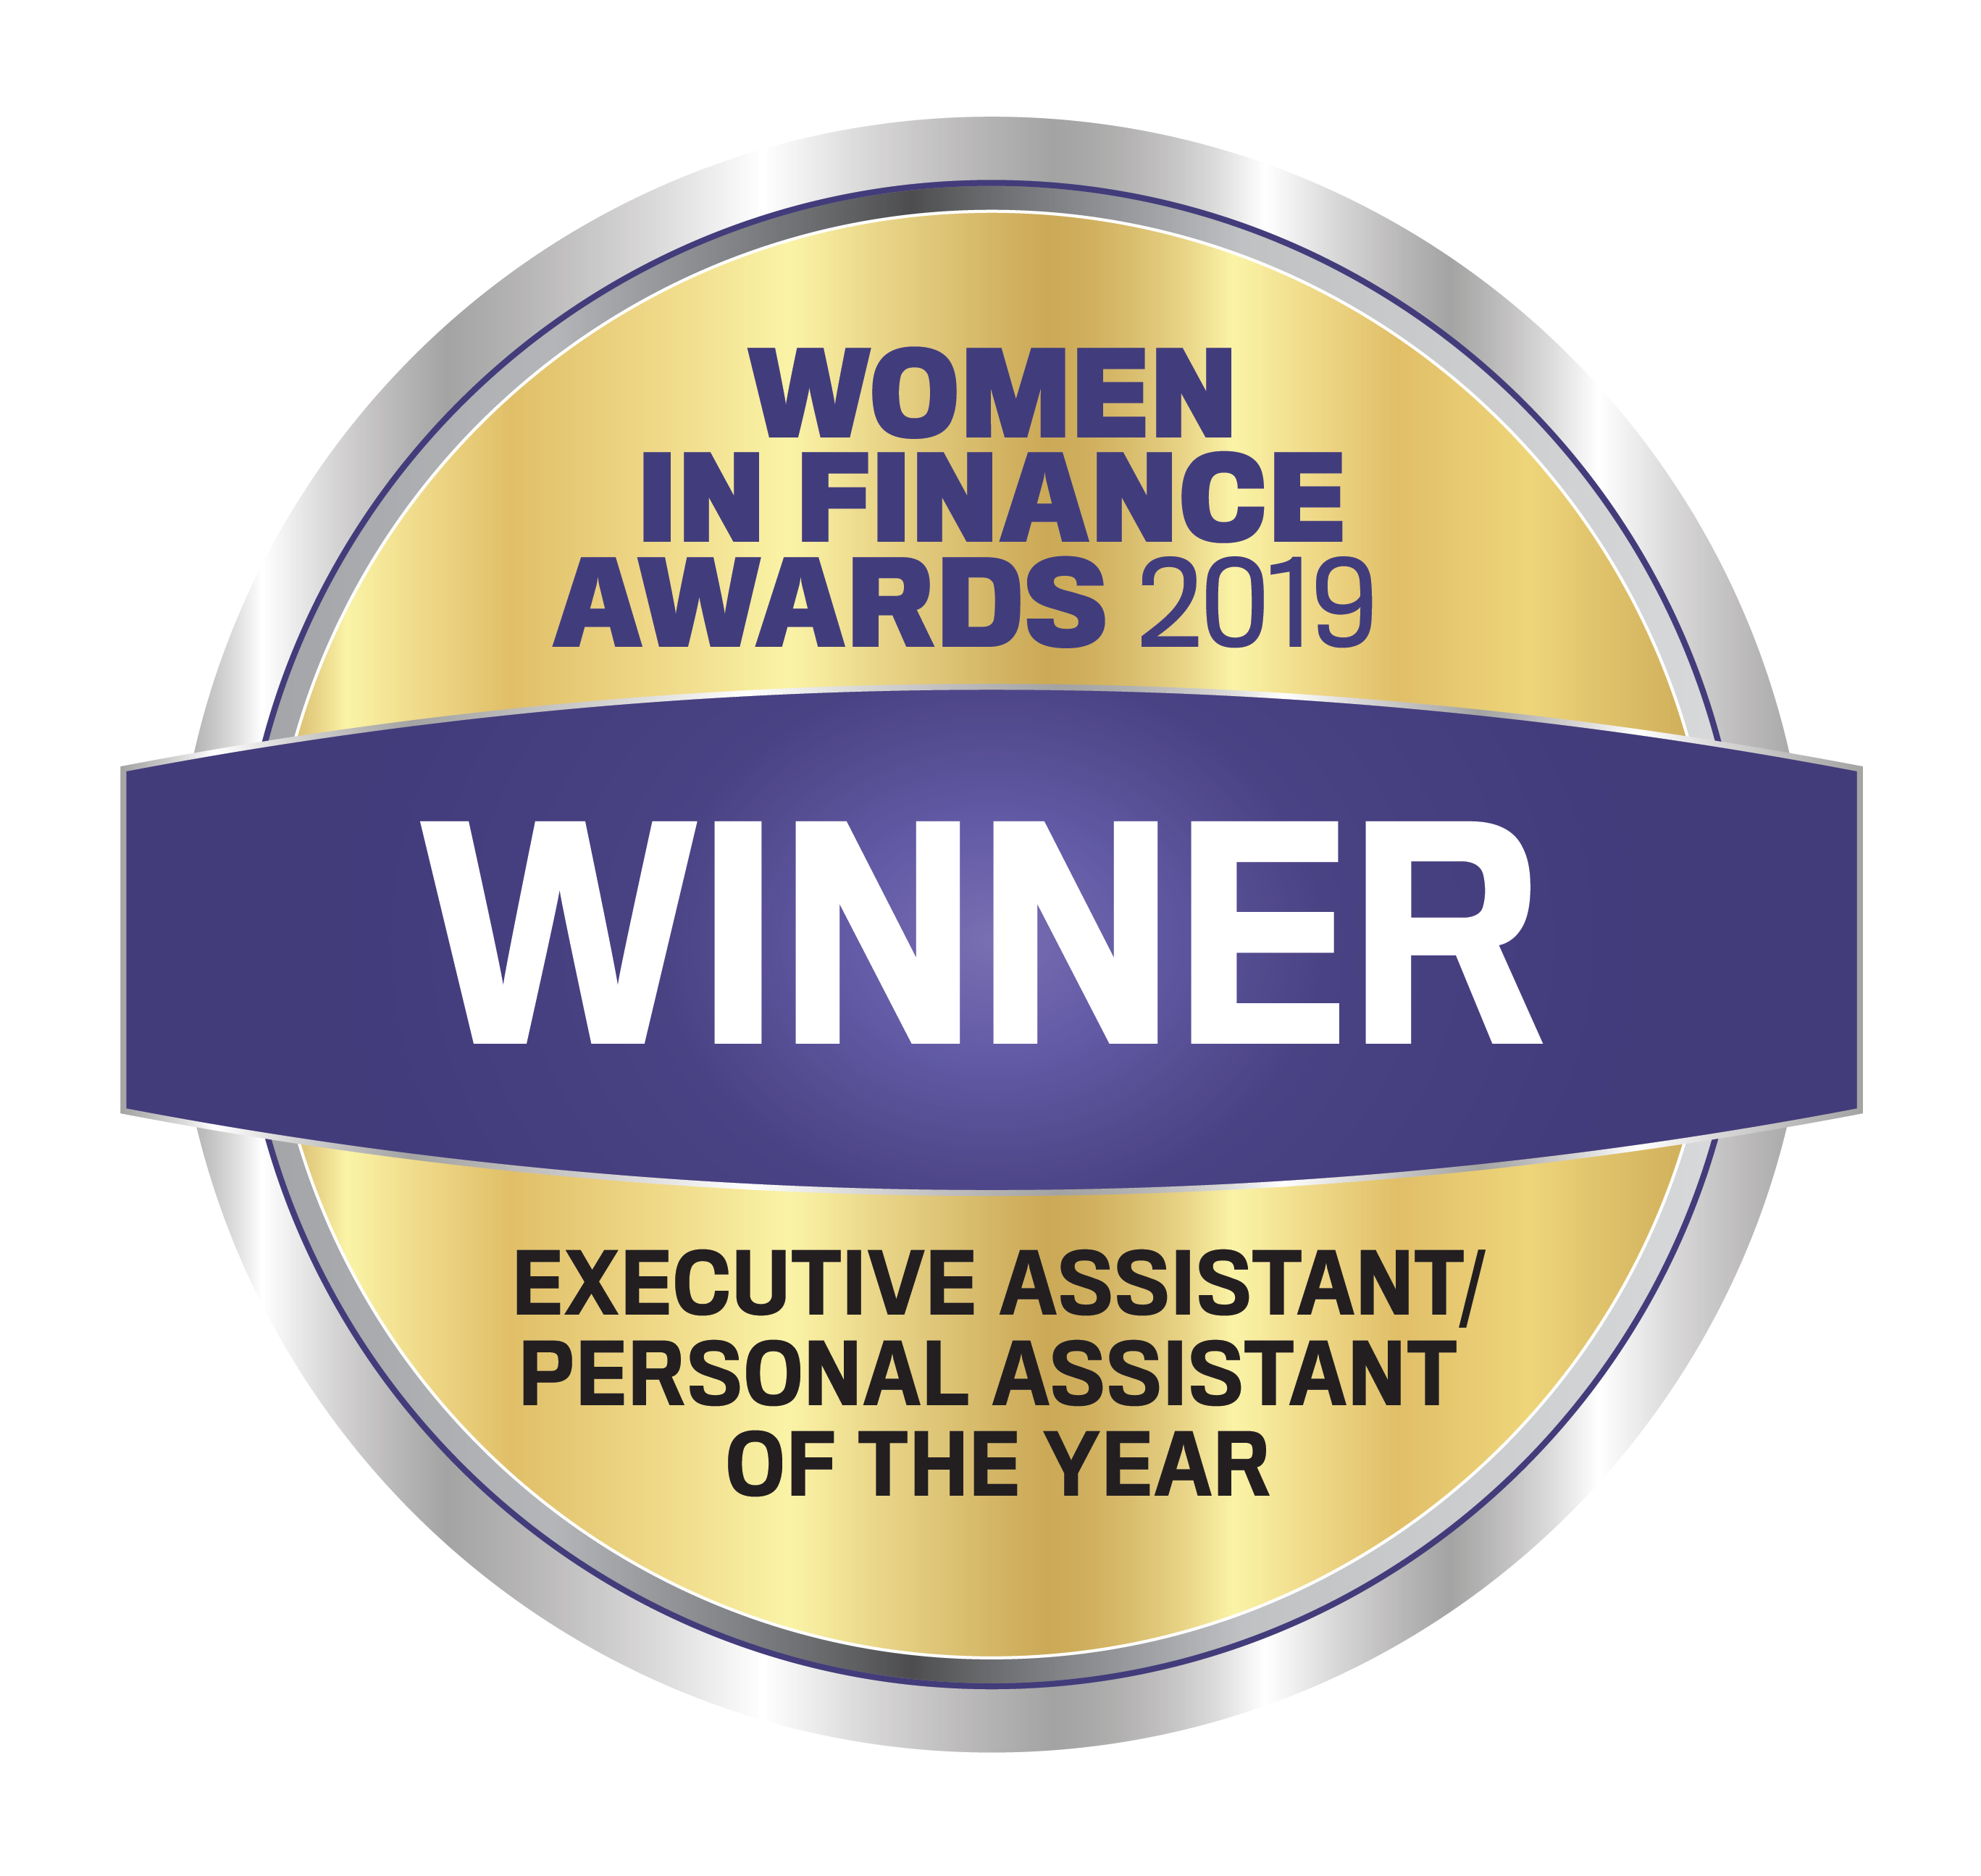 WIFA 2019 Winners Executive Assistant Personal Assistant of the Year